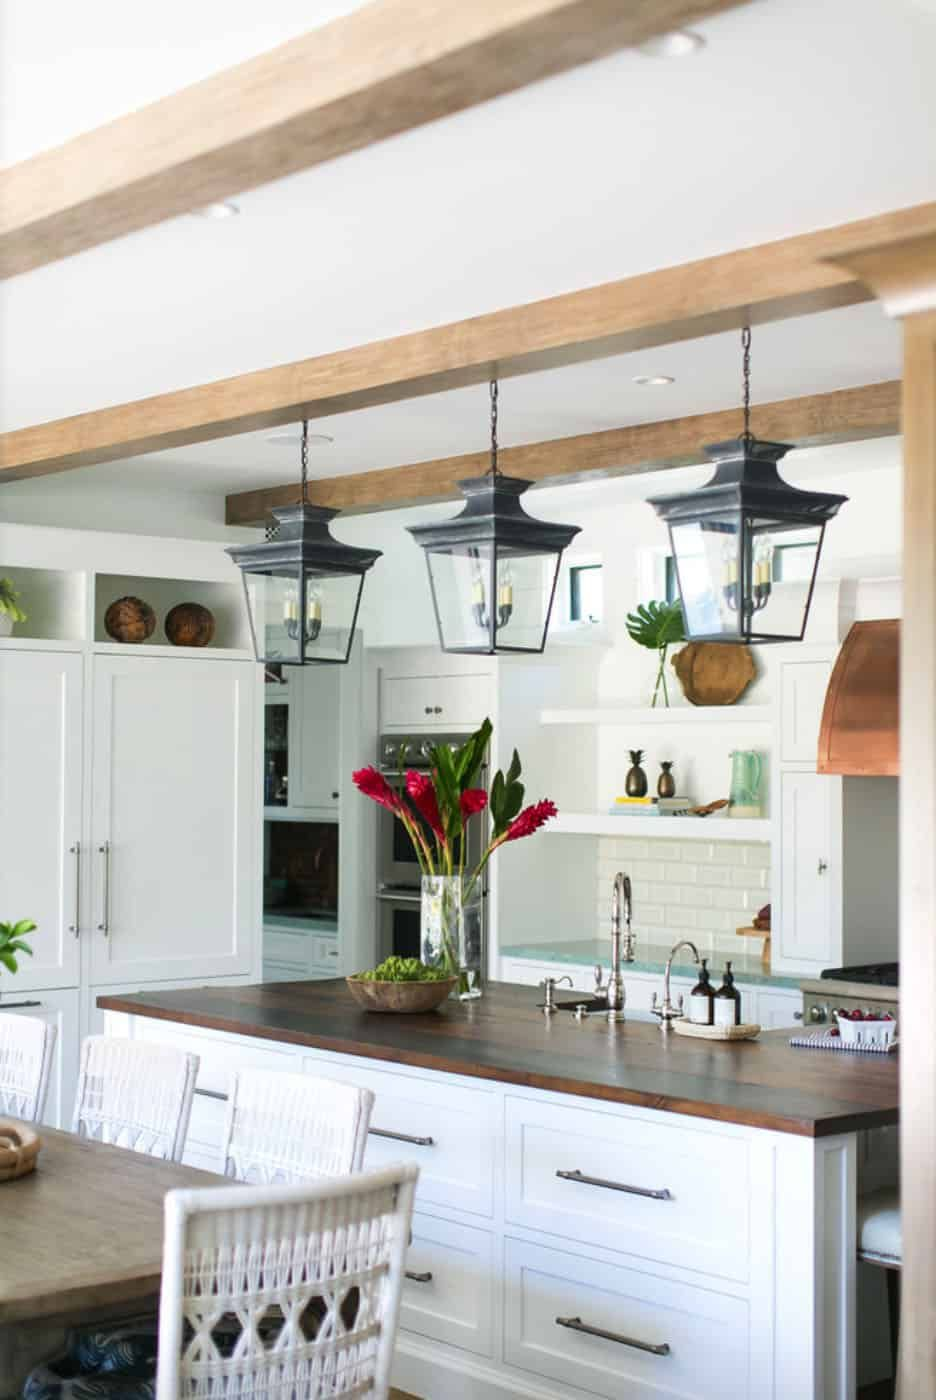 Cape Cod Style Home In Corona Del Mar Inspires A Taste Of The Caribbean Contemporary Kitchen Design Contemporary Kitchen Kitchen Design